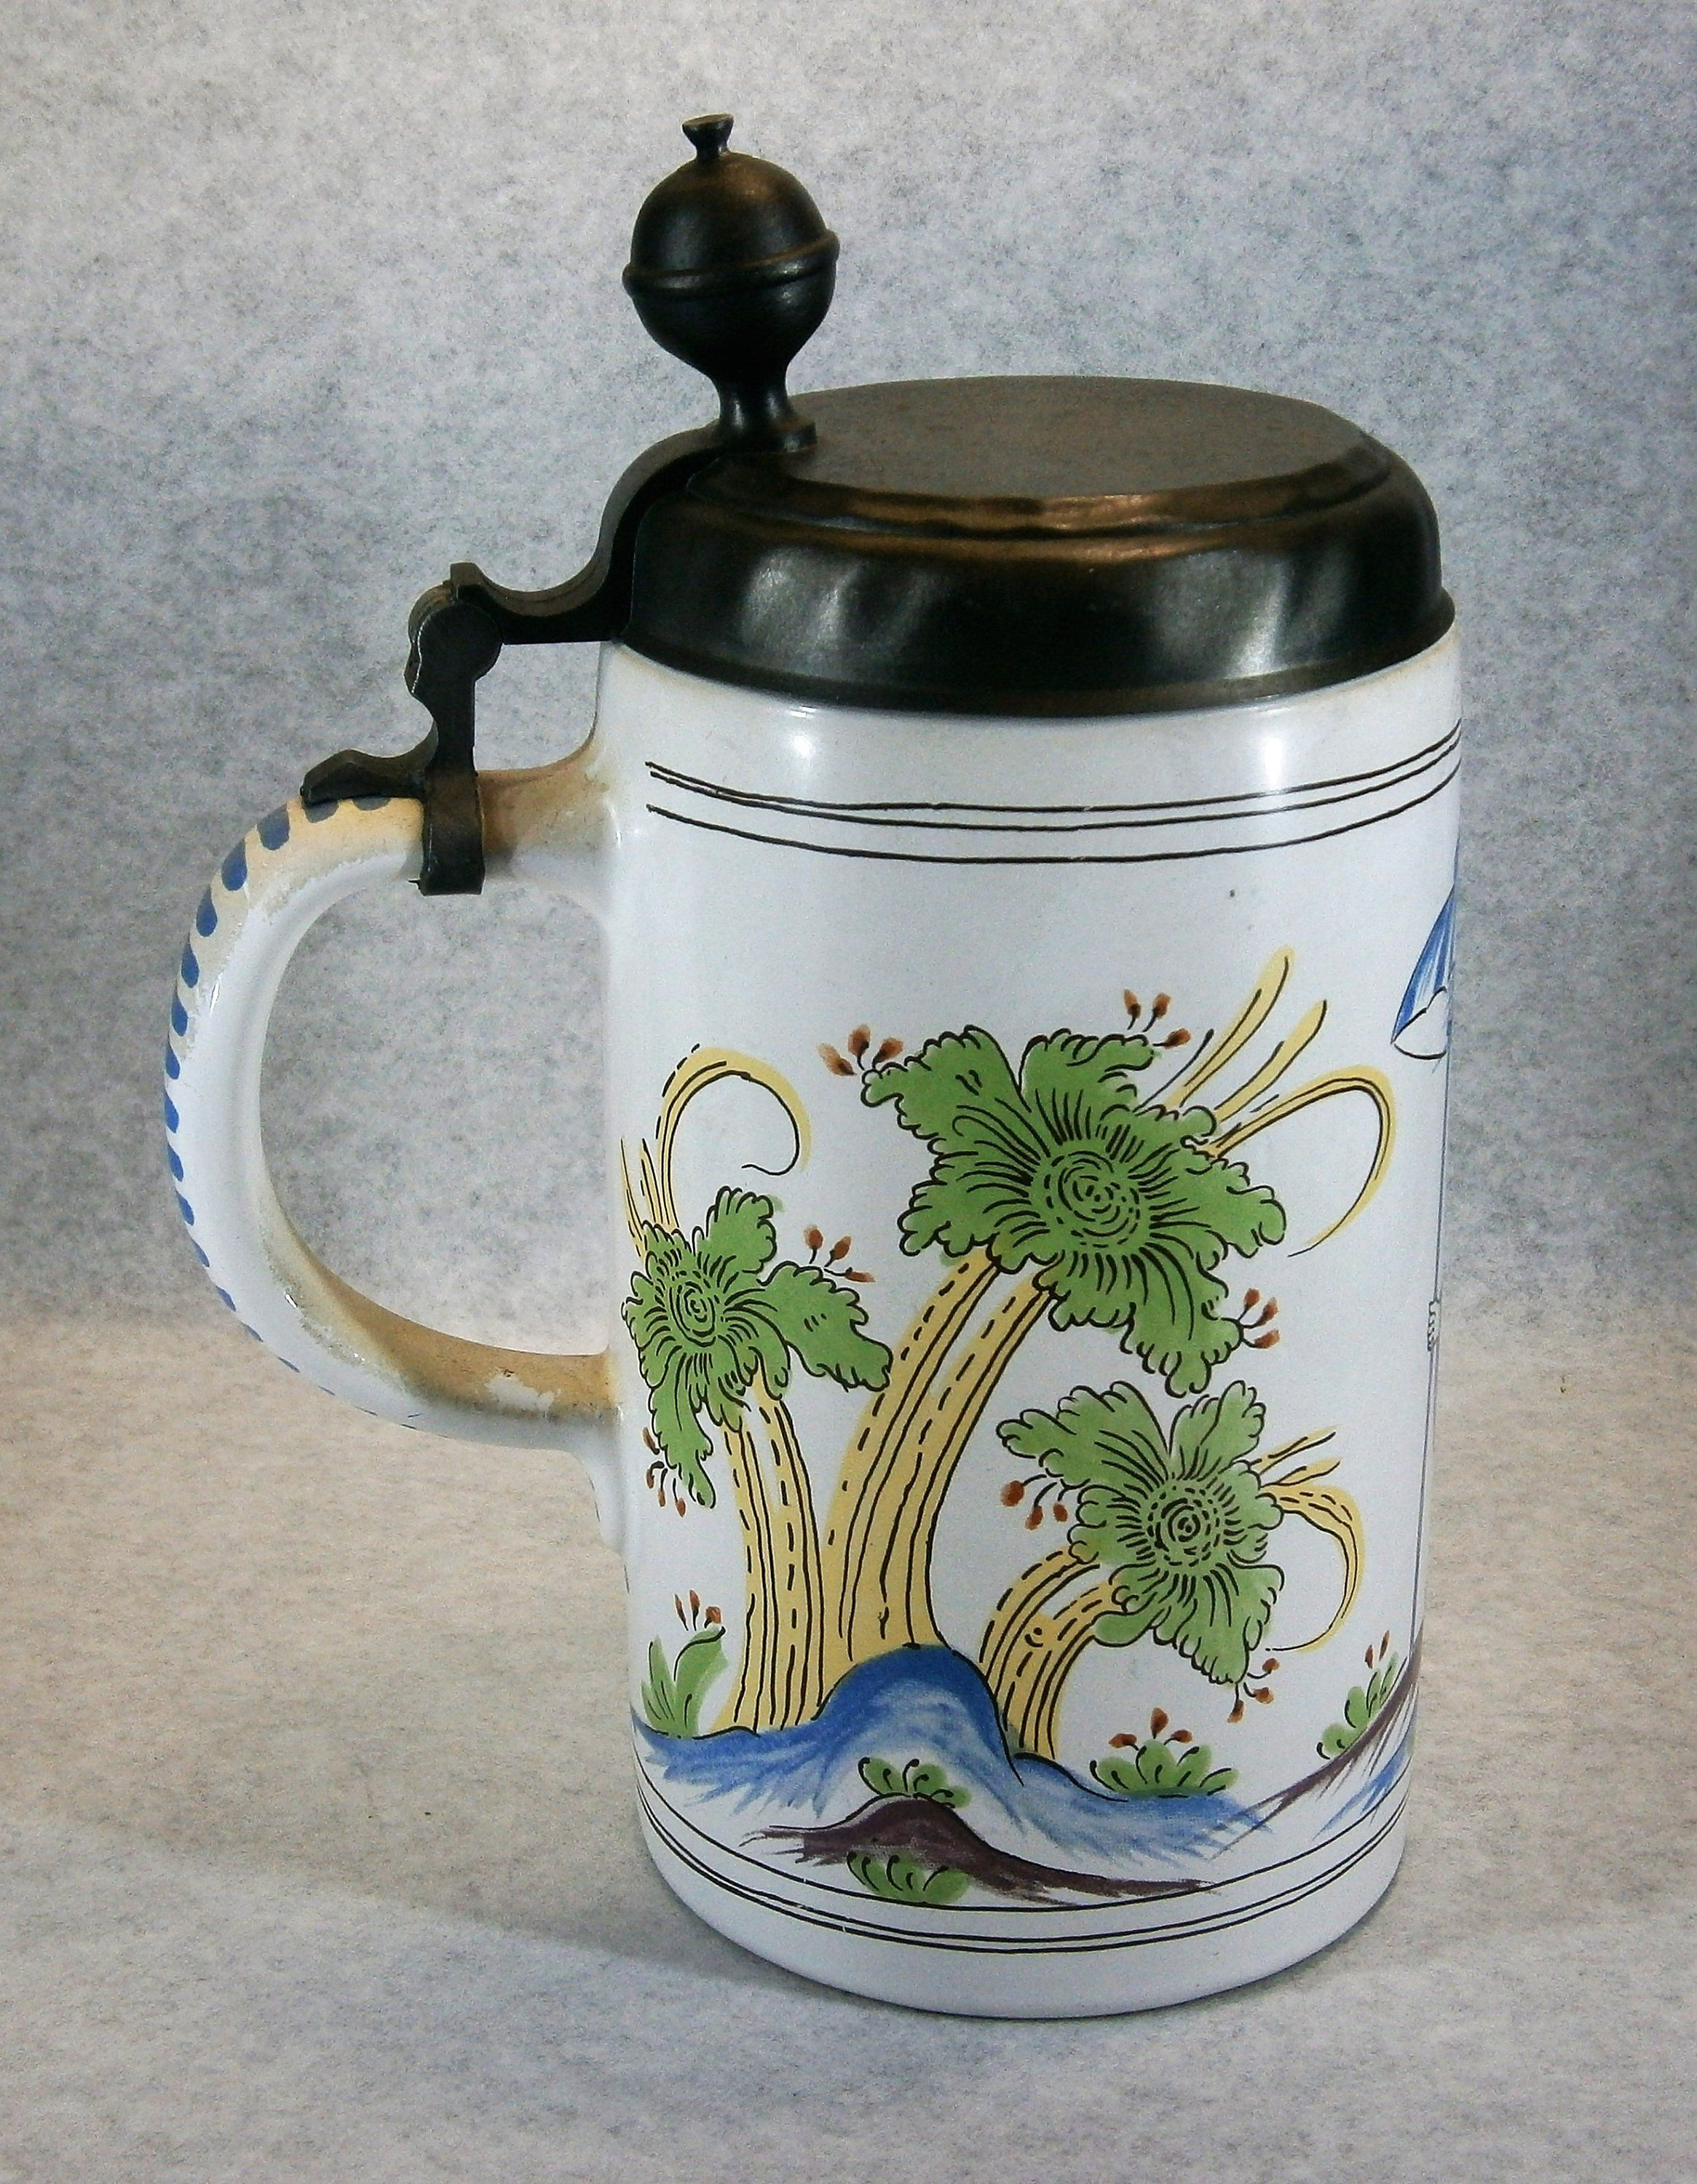 Excited To Share The Latest Addition To My Etsy Shop W282 Fayence Konig Pilsener Year Jug 1992 Multi Color Beer Stein Mug Tankard With Pewter Lid Https Etsy